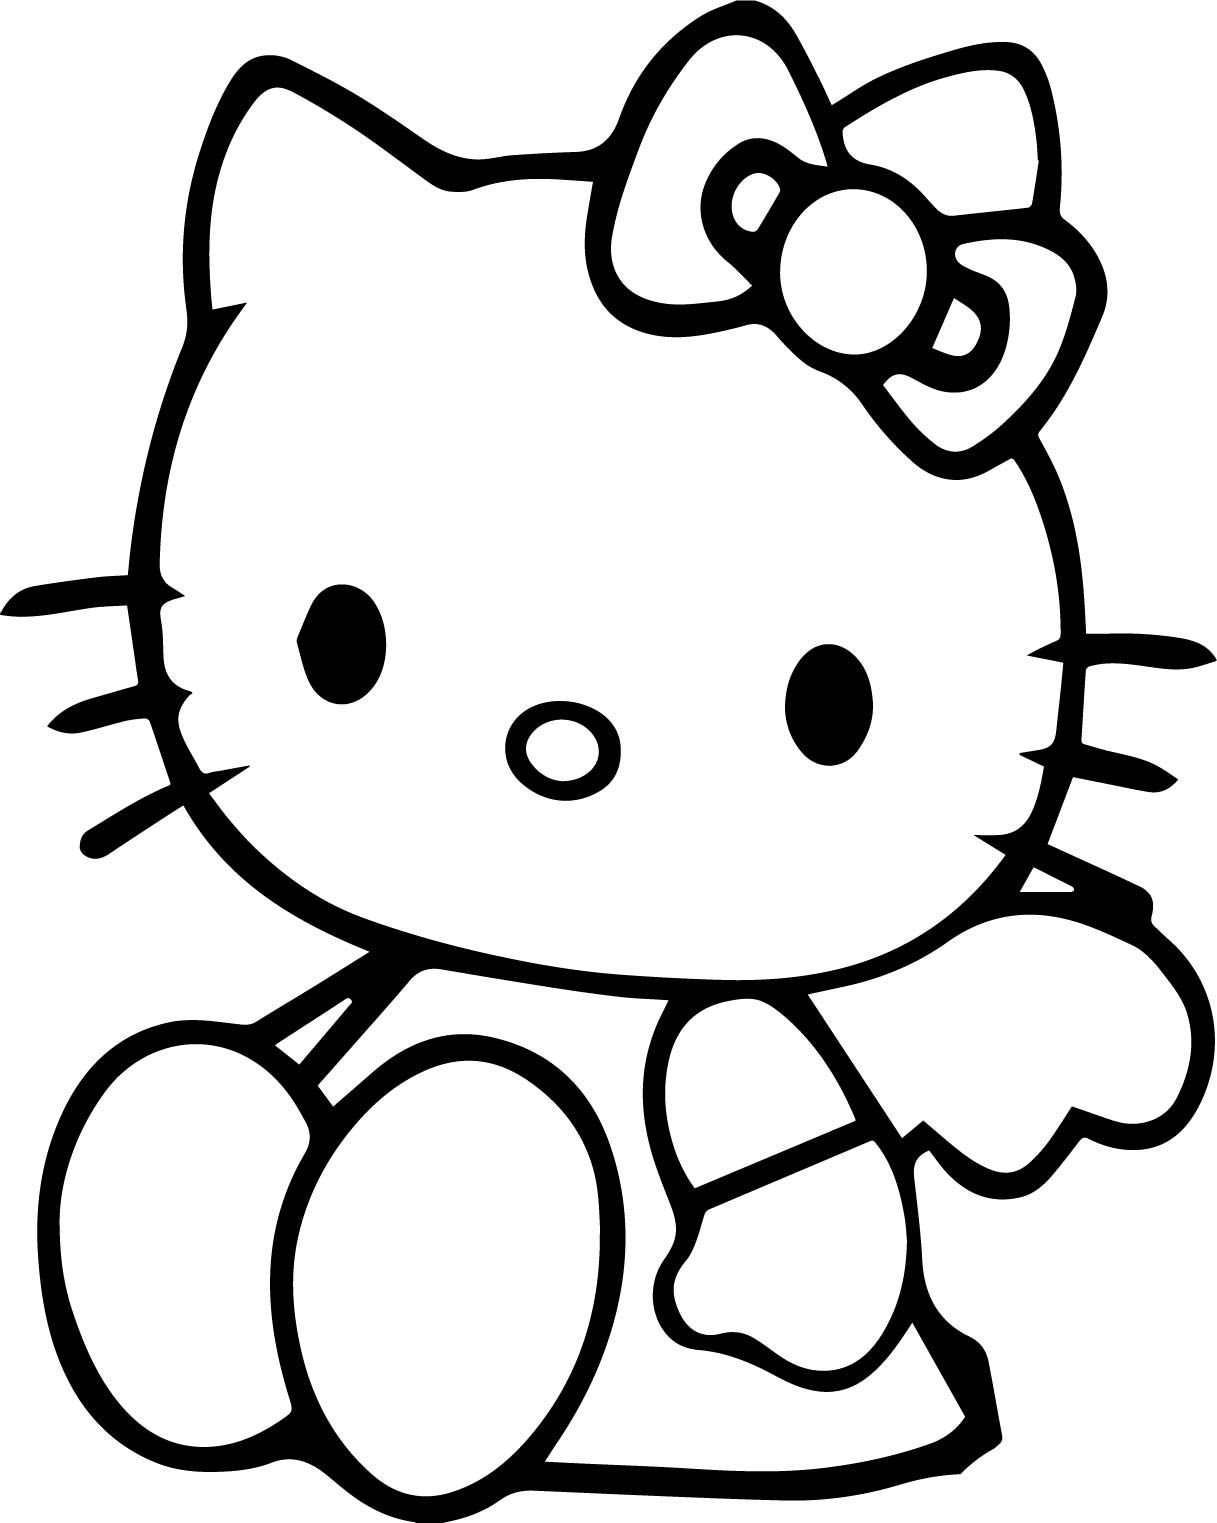 Nice Sitdown Hello Kitty Coloring Page Hello Kitty Colouring Pages Hello Kitty Coloring Kitty Coloring